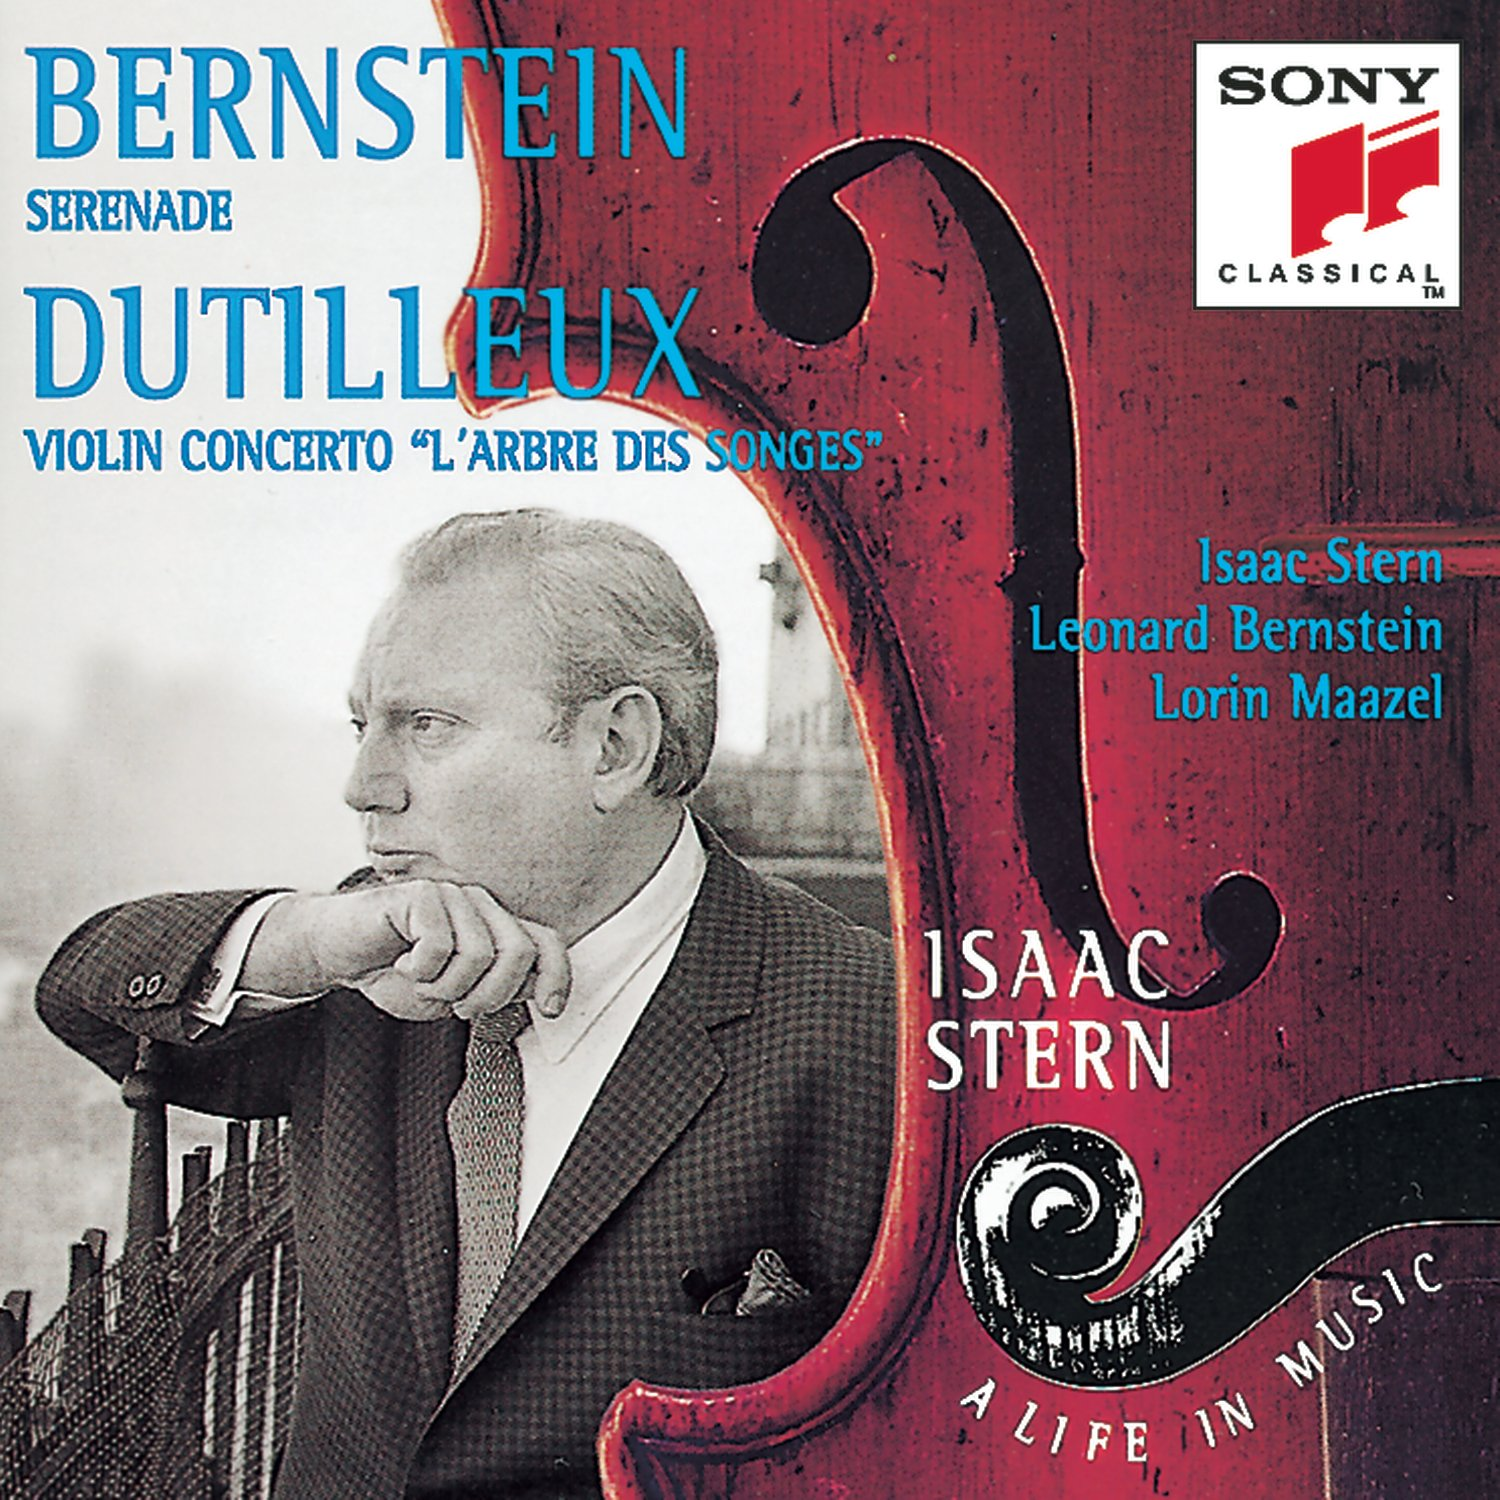 Isaac Stern: A Life in Music Vol. 15 - Bernstein: Serenade; Dutilleux: Violin Concerto ''L'Arbre des Songes by Sony Classical